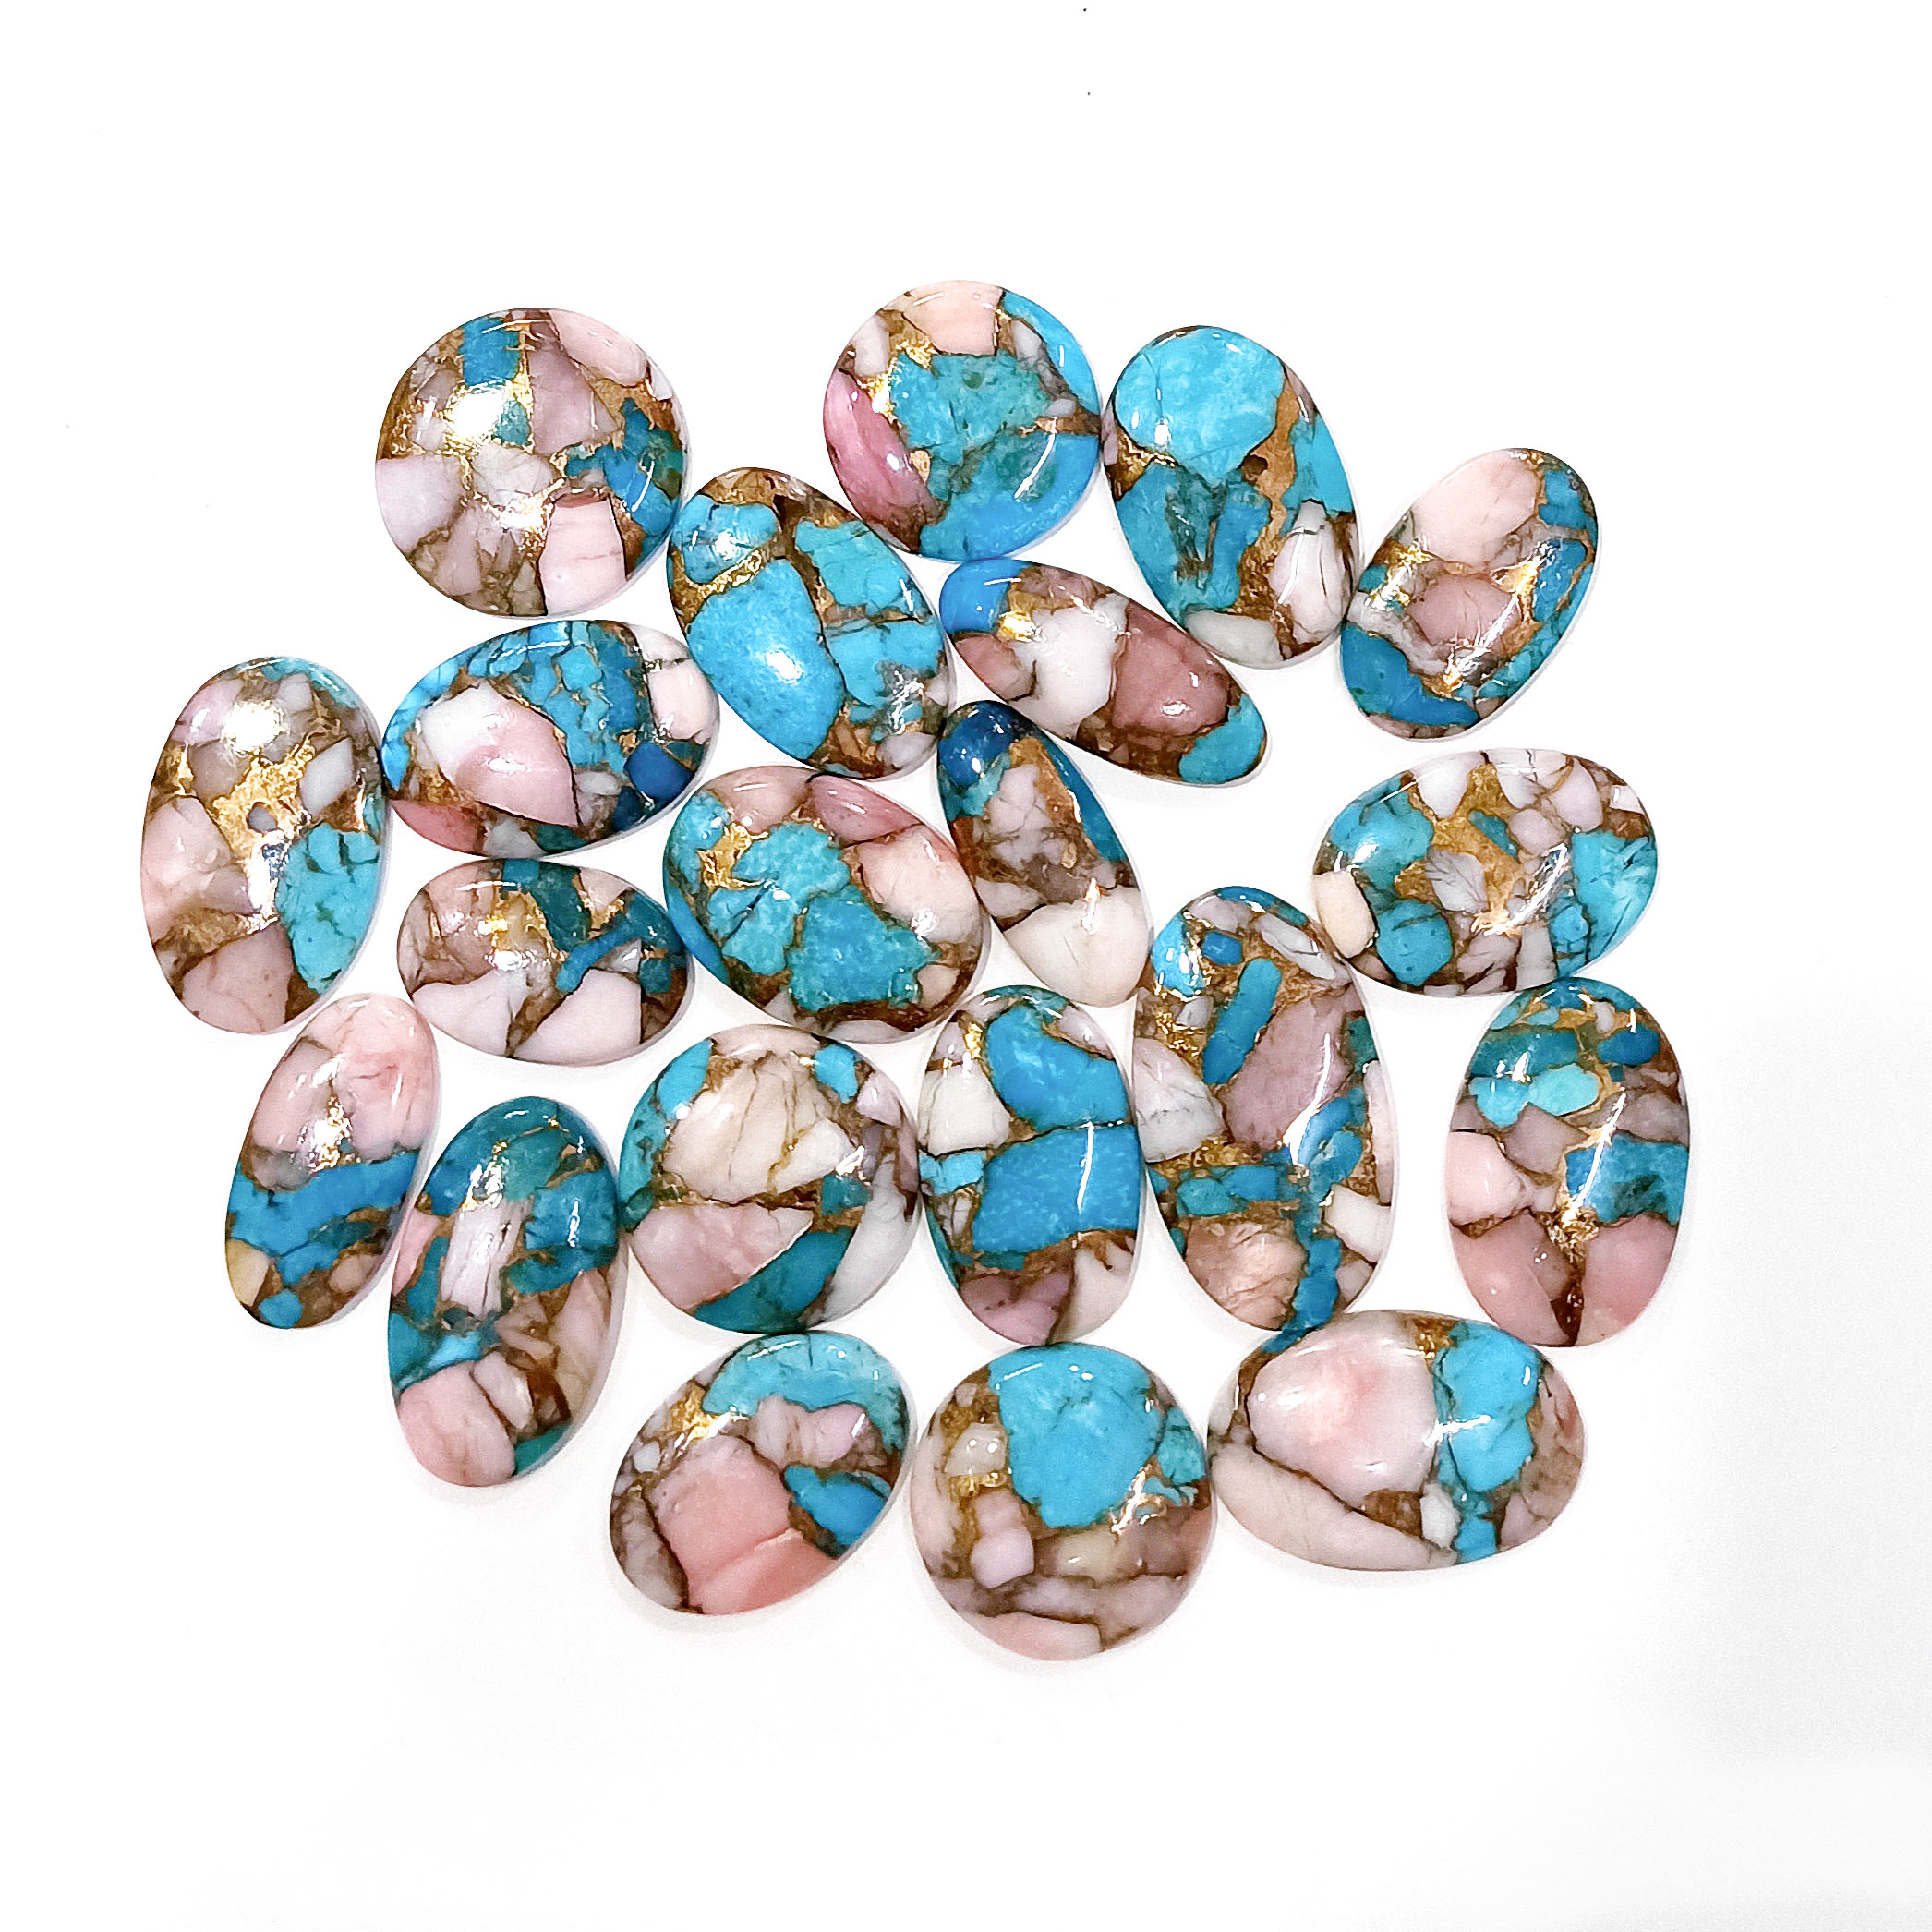 Details about  /8X10 MM PINK OPAL MOHAVE COPPER TURQUOISE LOOSE GEMSTONE WHOLESALE LOT 10 PCS